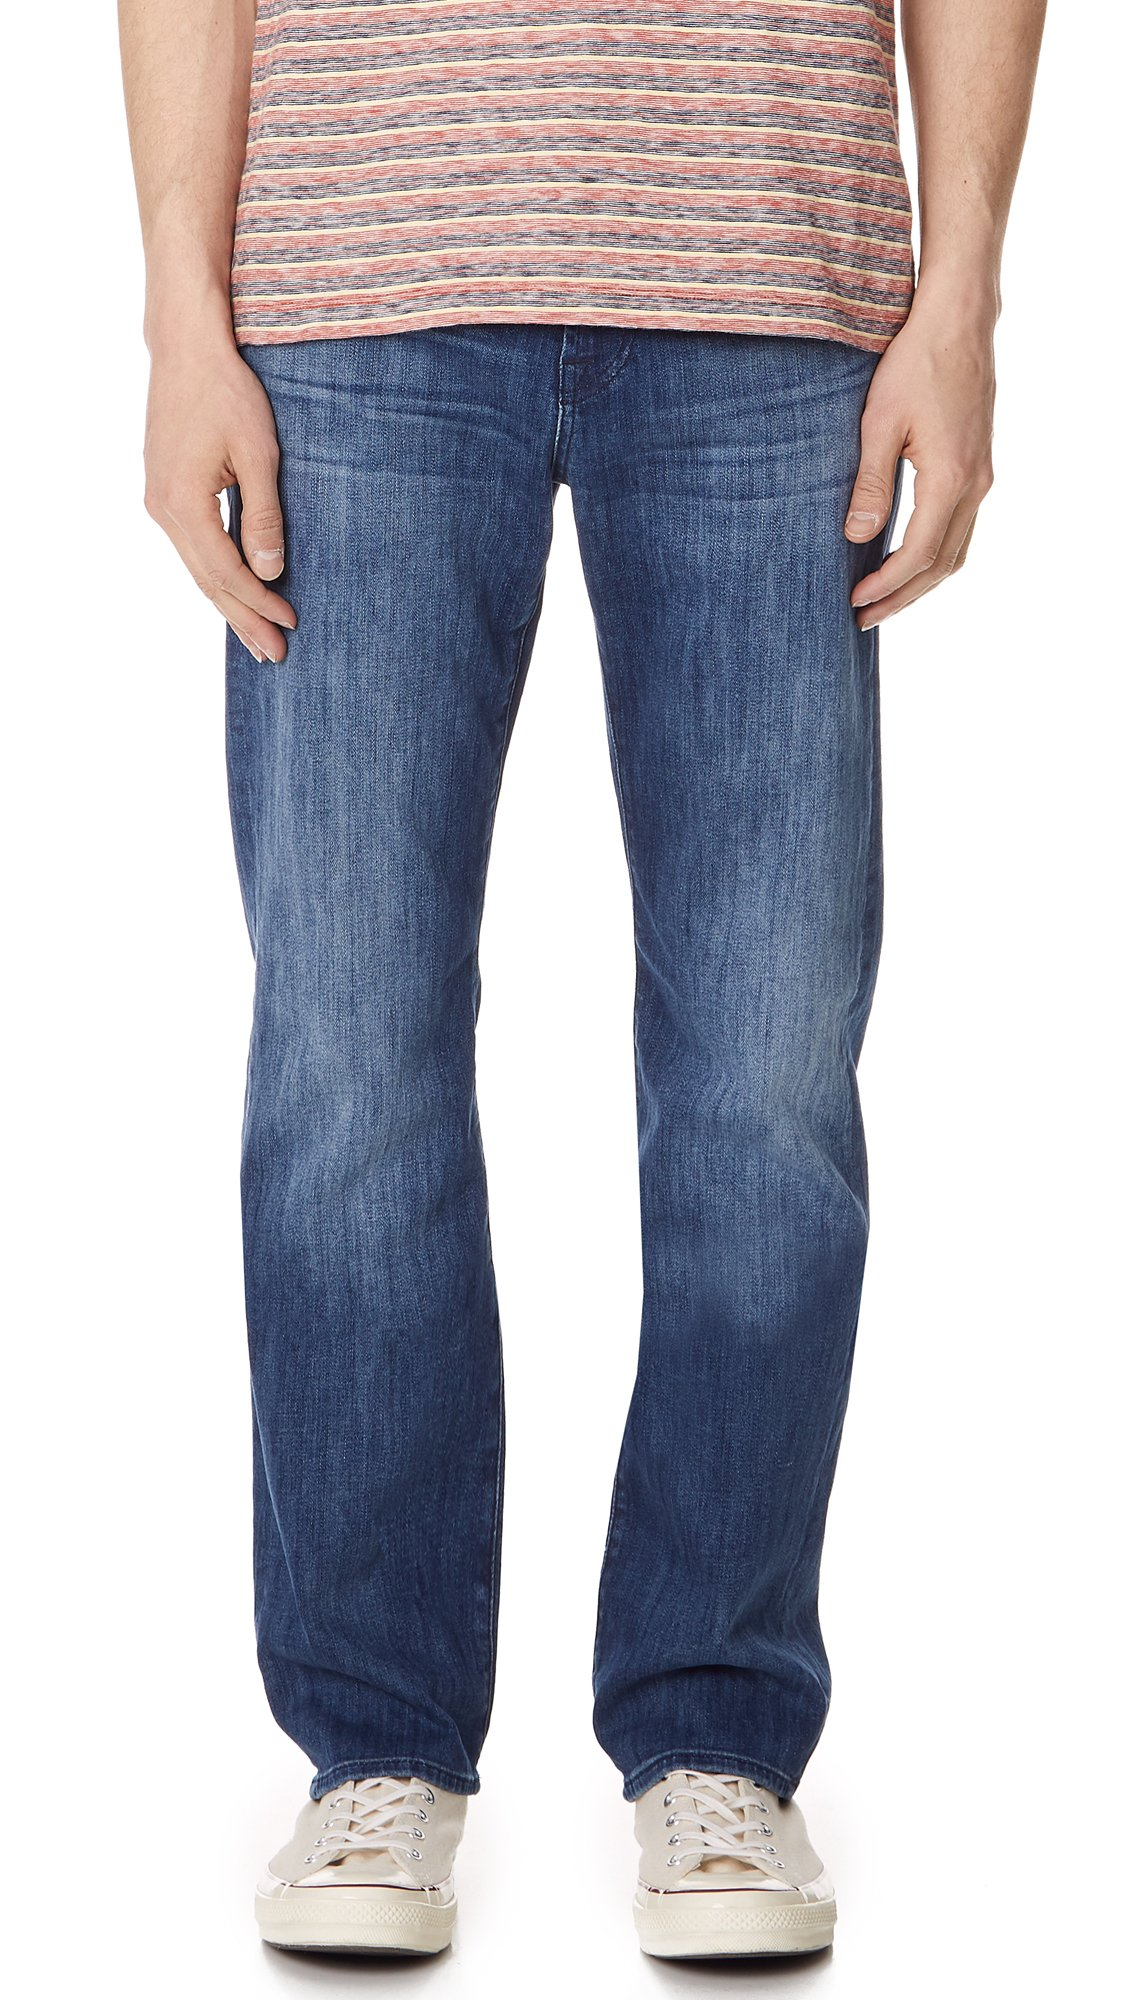 7 For All Mankind Men's Austyn Relaxed Straight Luxe Performance Jean, Nakkitta Blue, 30x33.5